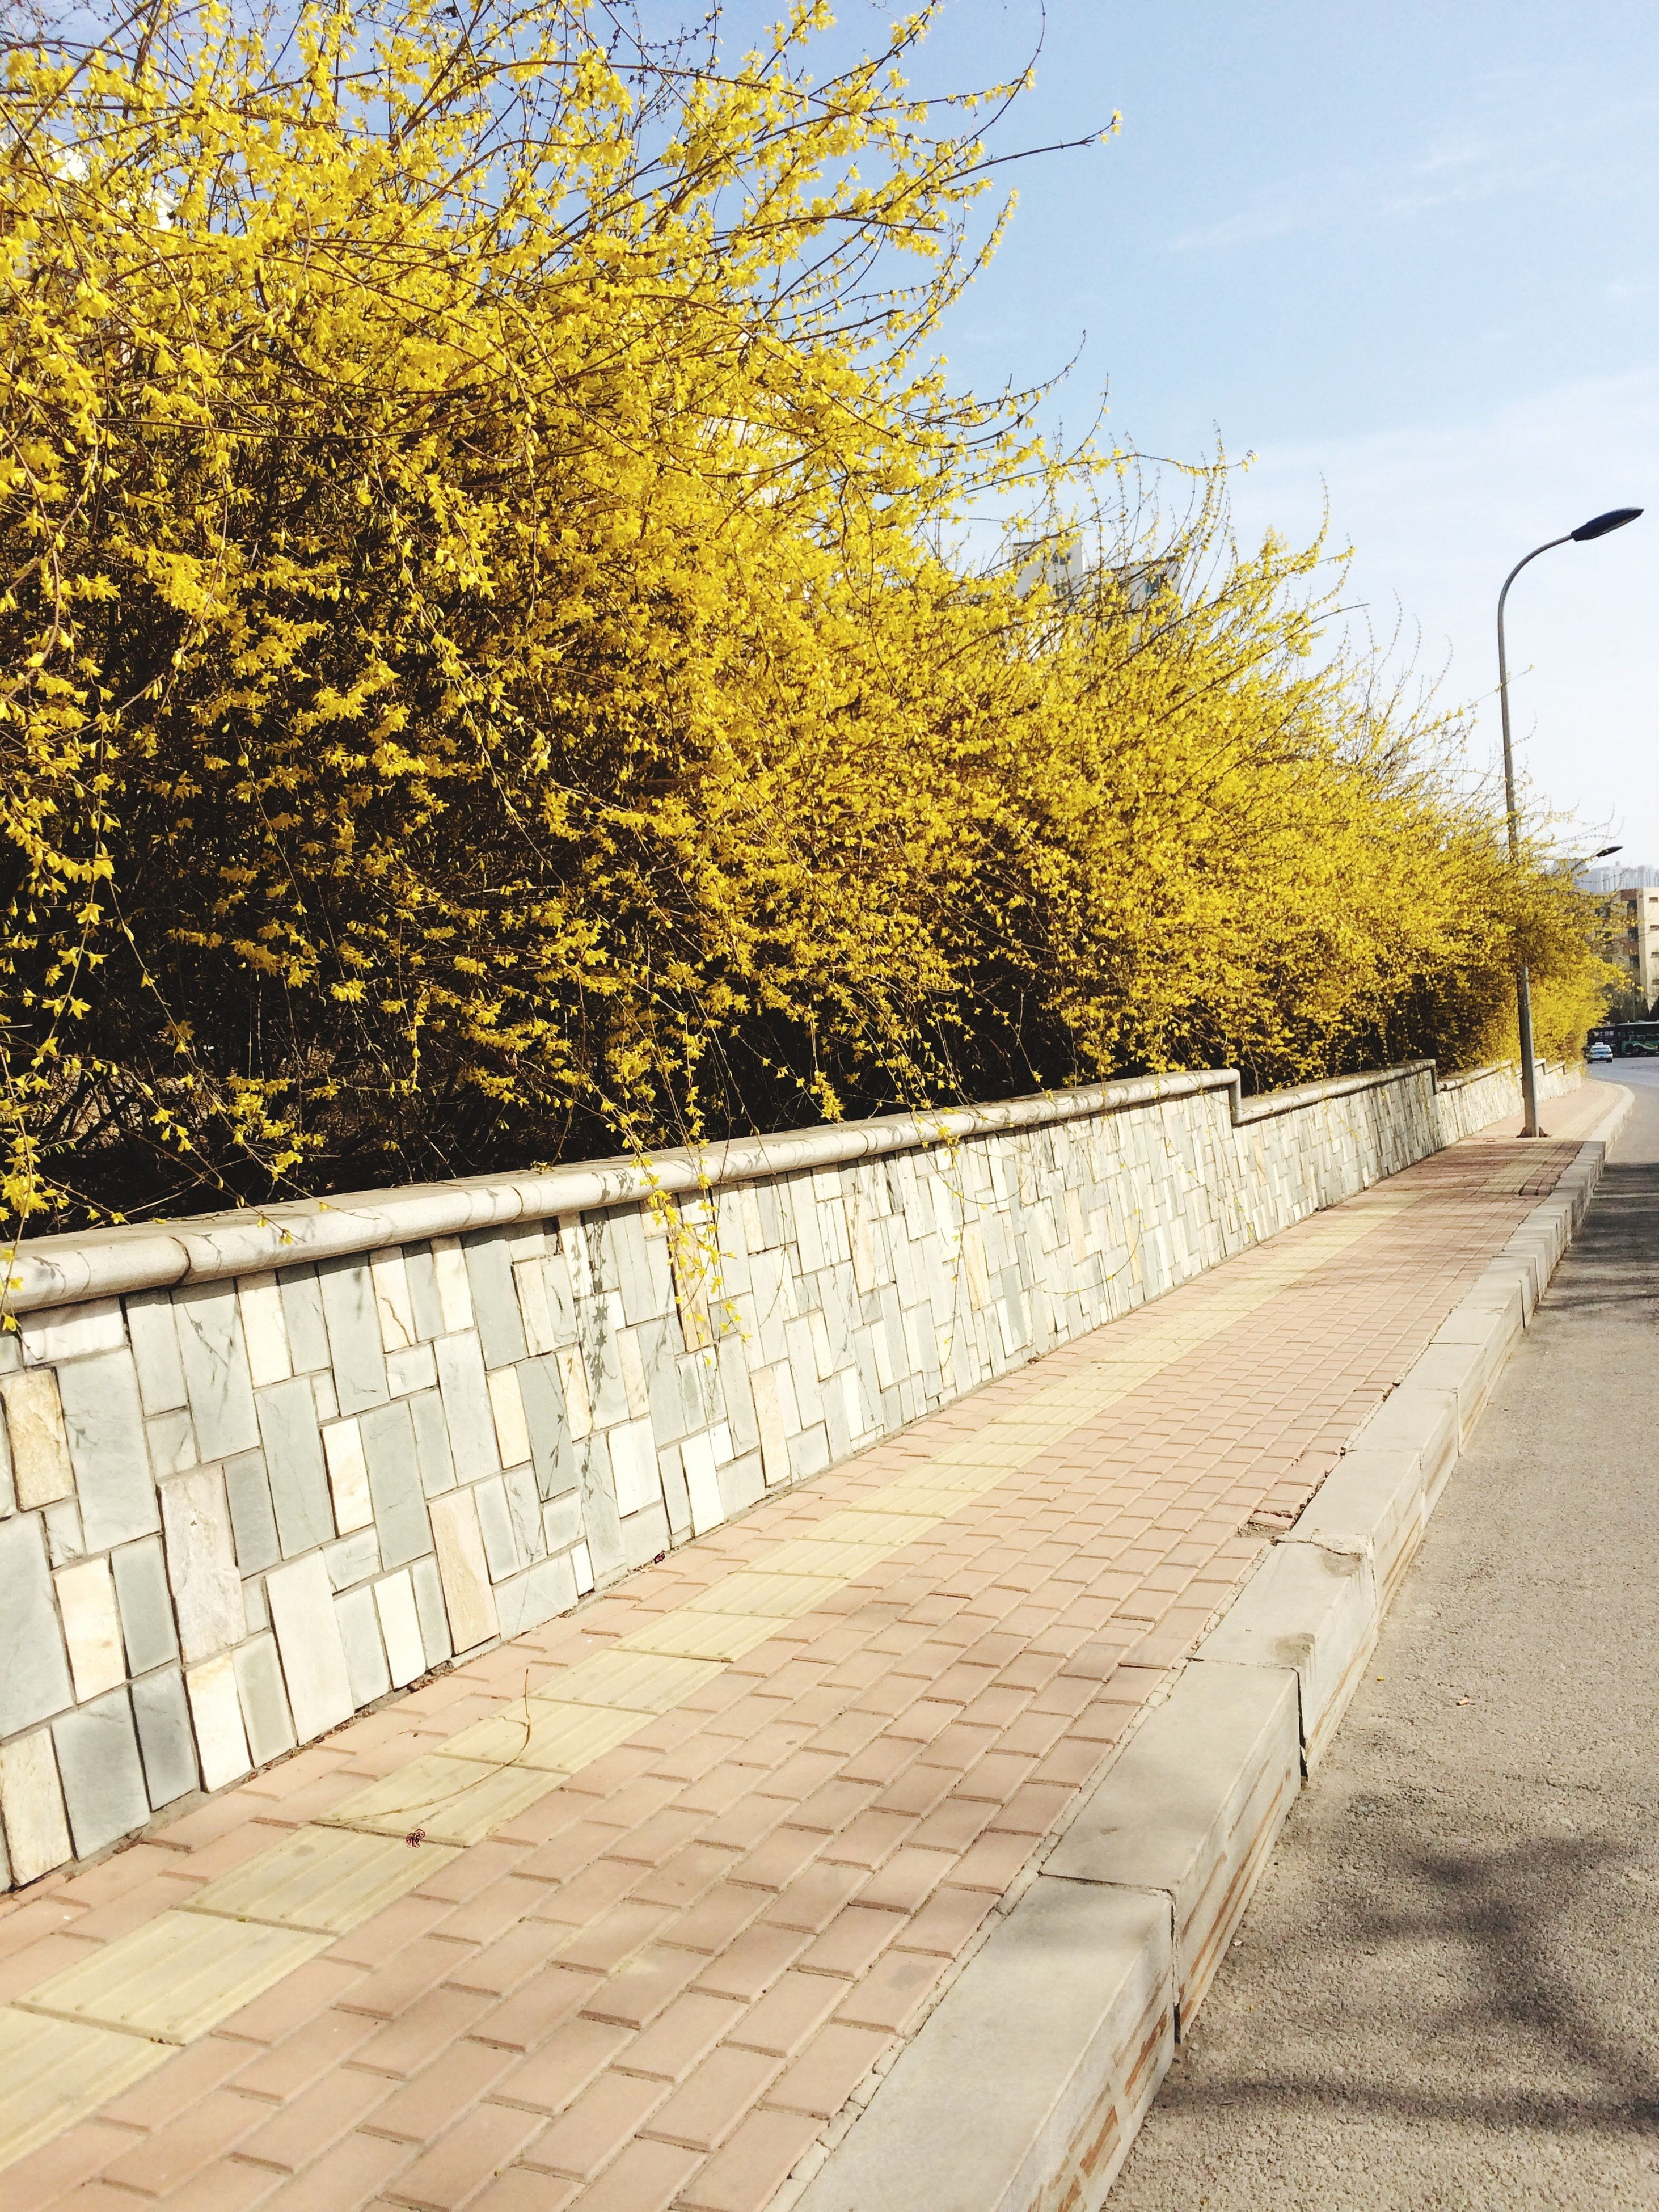 tree, yellow, growth, built structure, the way forward, sky, railing, plant, architecture, sunlight, day, street, outdoors, building exterior, transportation, road, sidewalk, footpath, no people, nature